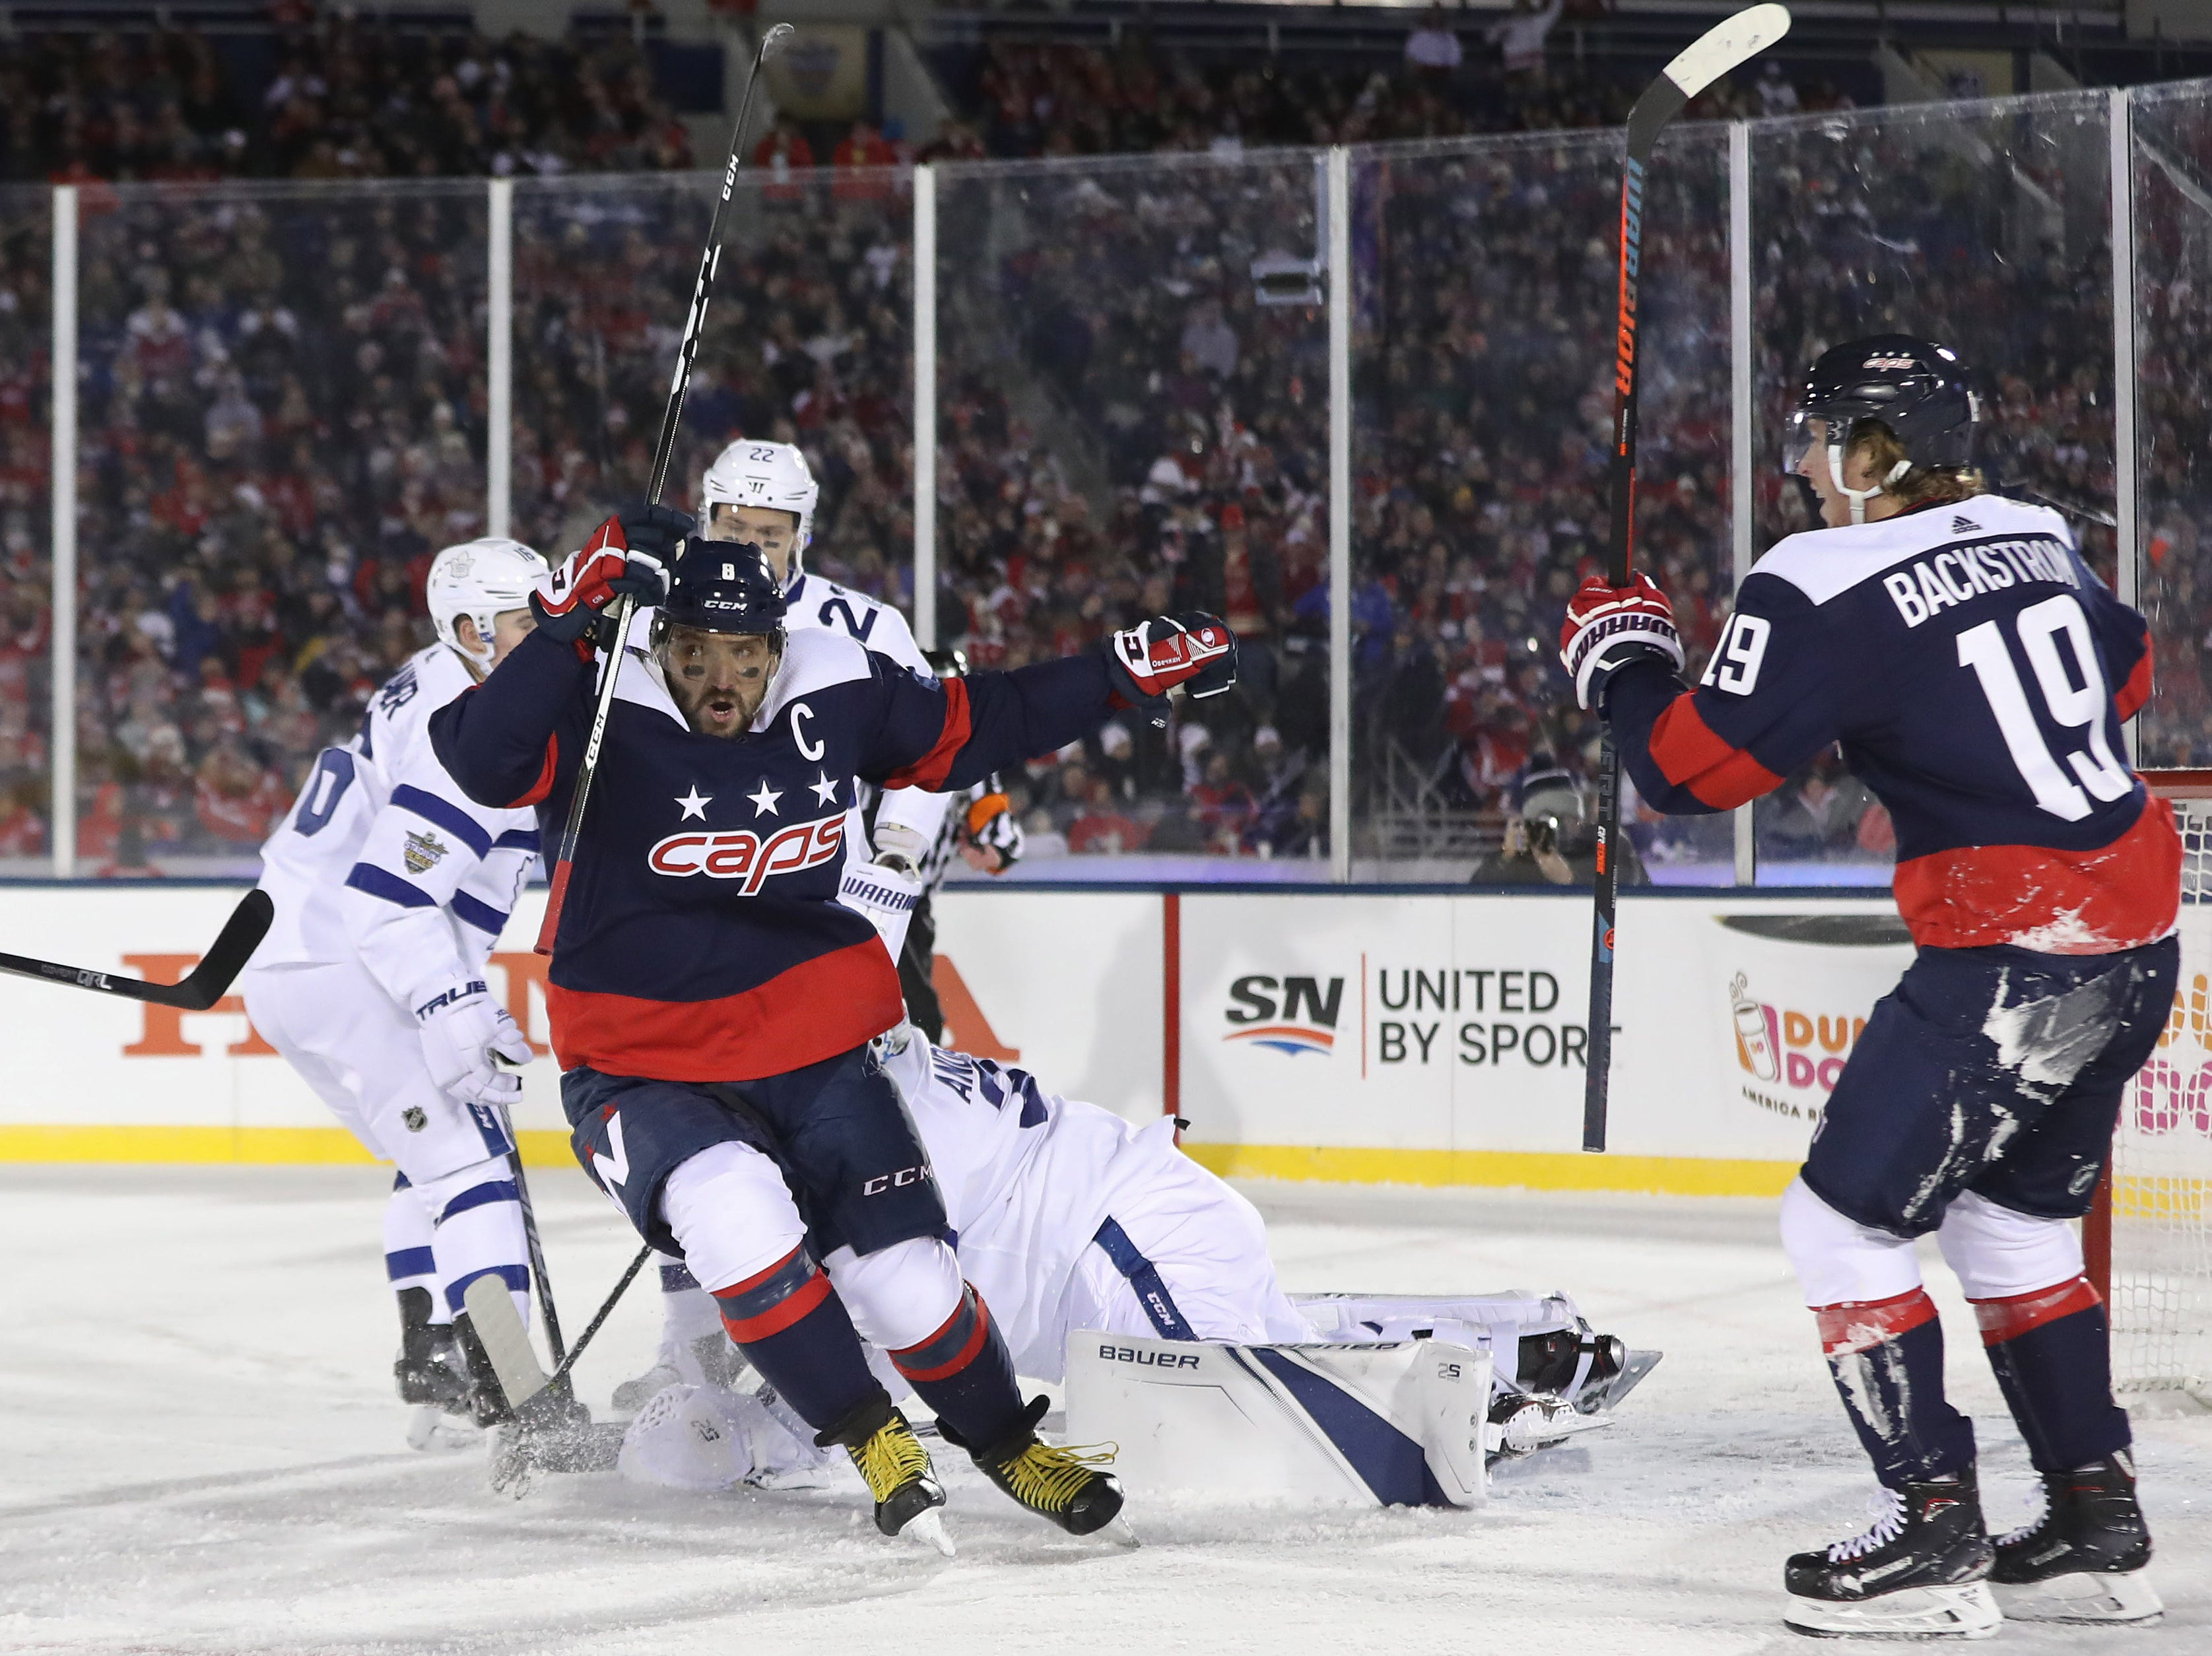 March 3: Washington Capitals left wing Alex Ovechkin (8) celebrates after scoring a goal on Toronto Maple Leafs goaltender Frederik Andersen (31) in the first period in a Stadium Series game at Navy-Marine Corps Memorial Stadium.